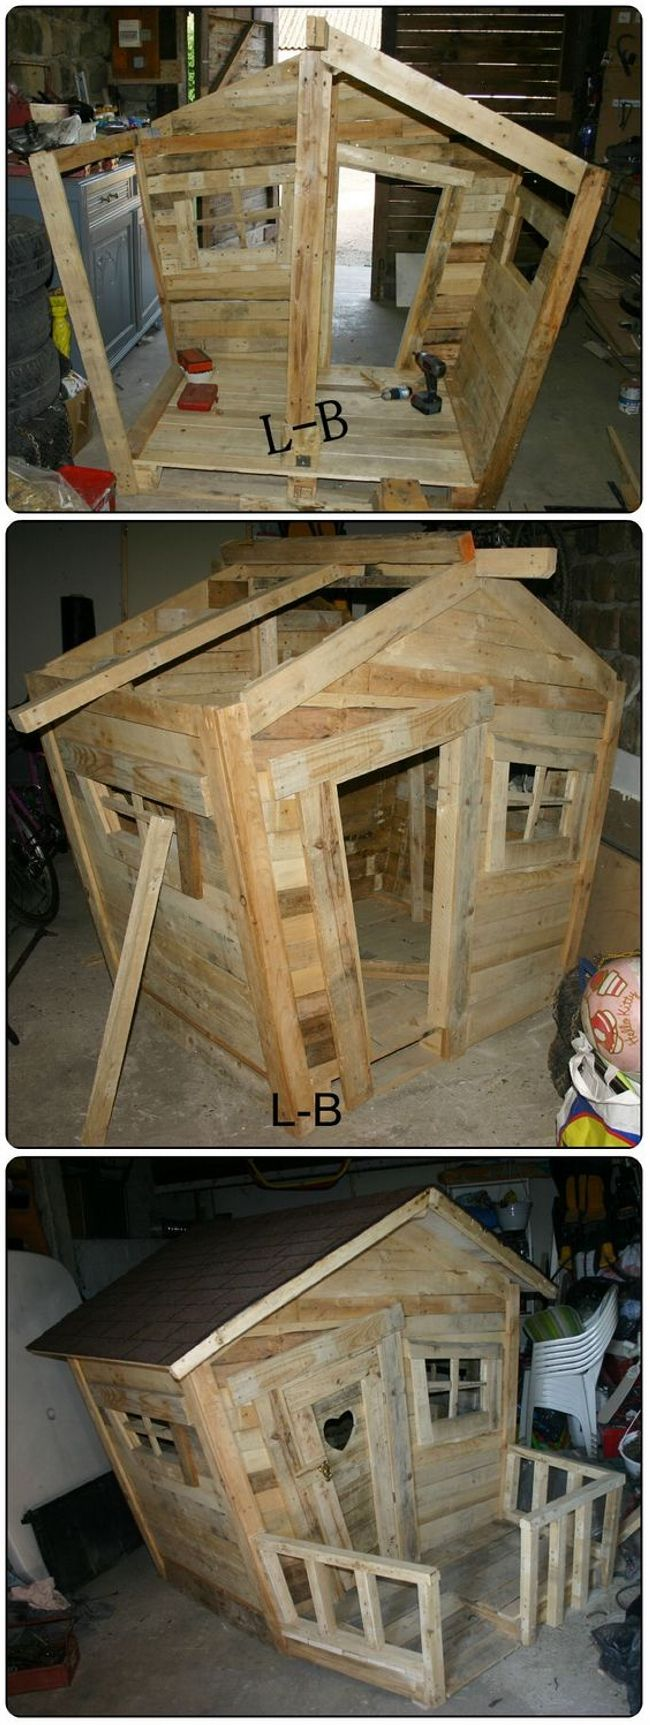 Pallet wood can be easily used to make small wooden houses. The pallet used will be cheap and easily available. You can use it to make small tree houses like a doll house or camp house with hut shape or you can also use it as a dog house. It will be spacious and has a distinguish look.